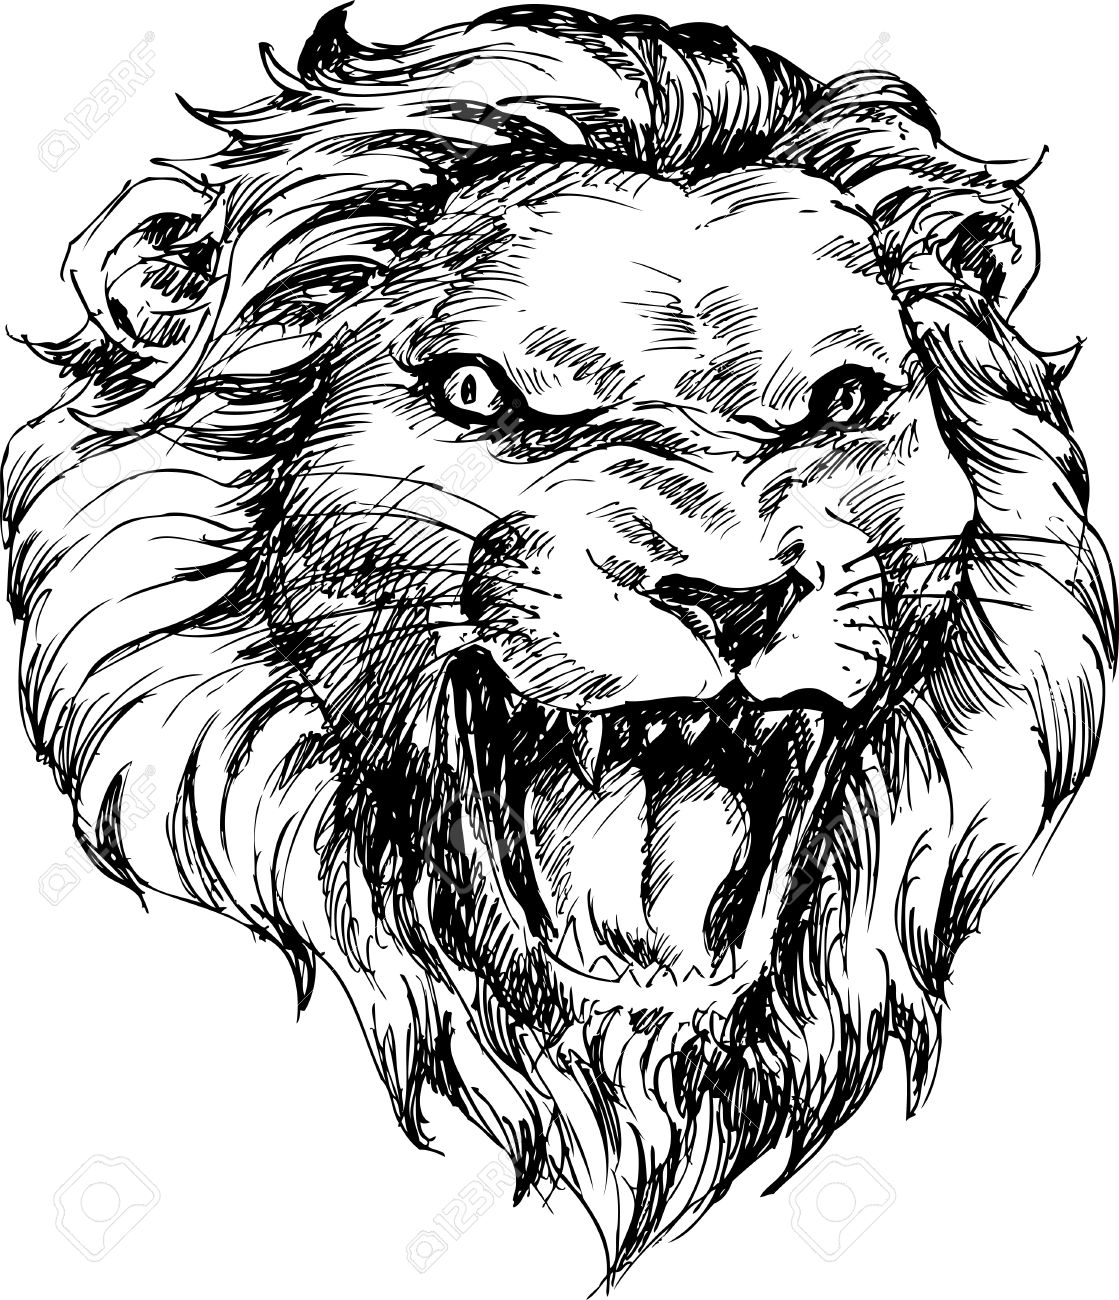 Line Drawing Lion Head : Lion face outline drawing at getdrawings free for